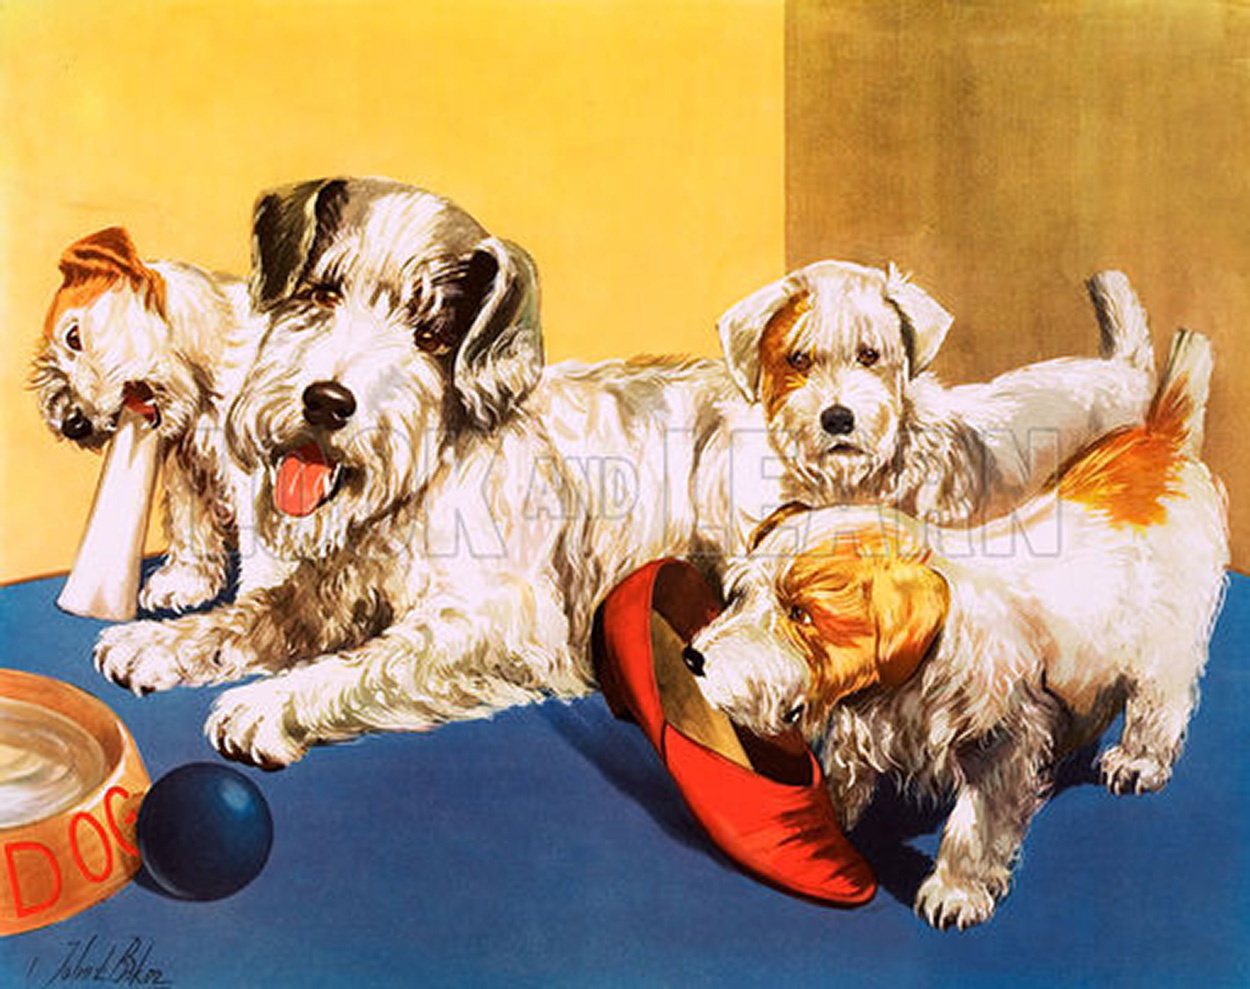 A Dog and her Puppies (Original Macmillan Poster) (Print) by